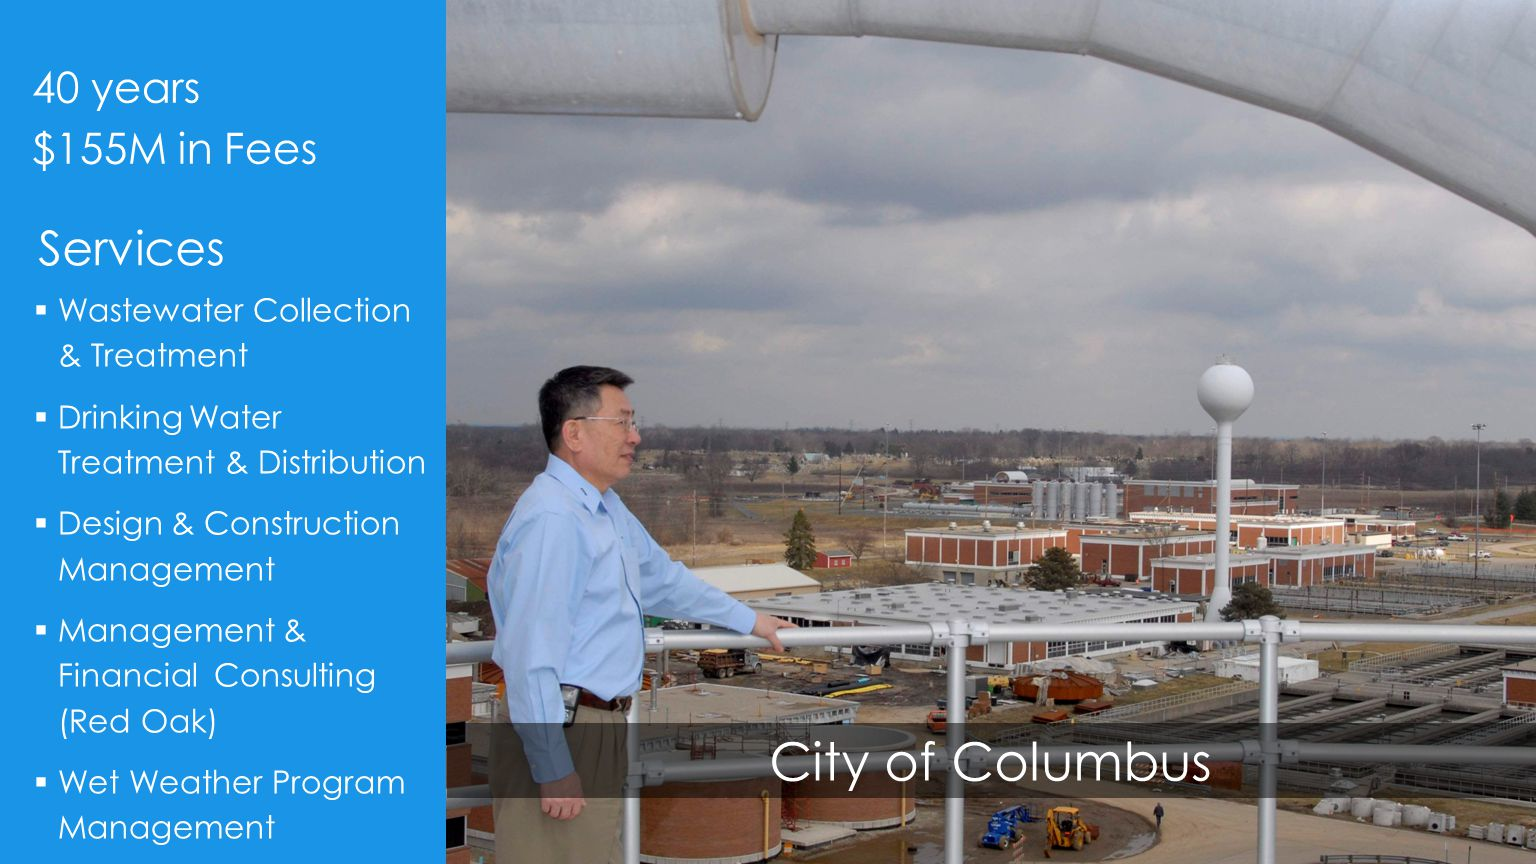 City of Columbus  Wastewater Collection & Treatment  Drinking Water Treatment & Distribution  Design & Construction Management  Management & Financial Consulting (Red Oak)  Wet Weather Program Management 40 years $155M in Fees Services